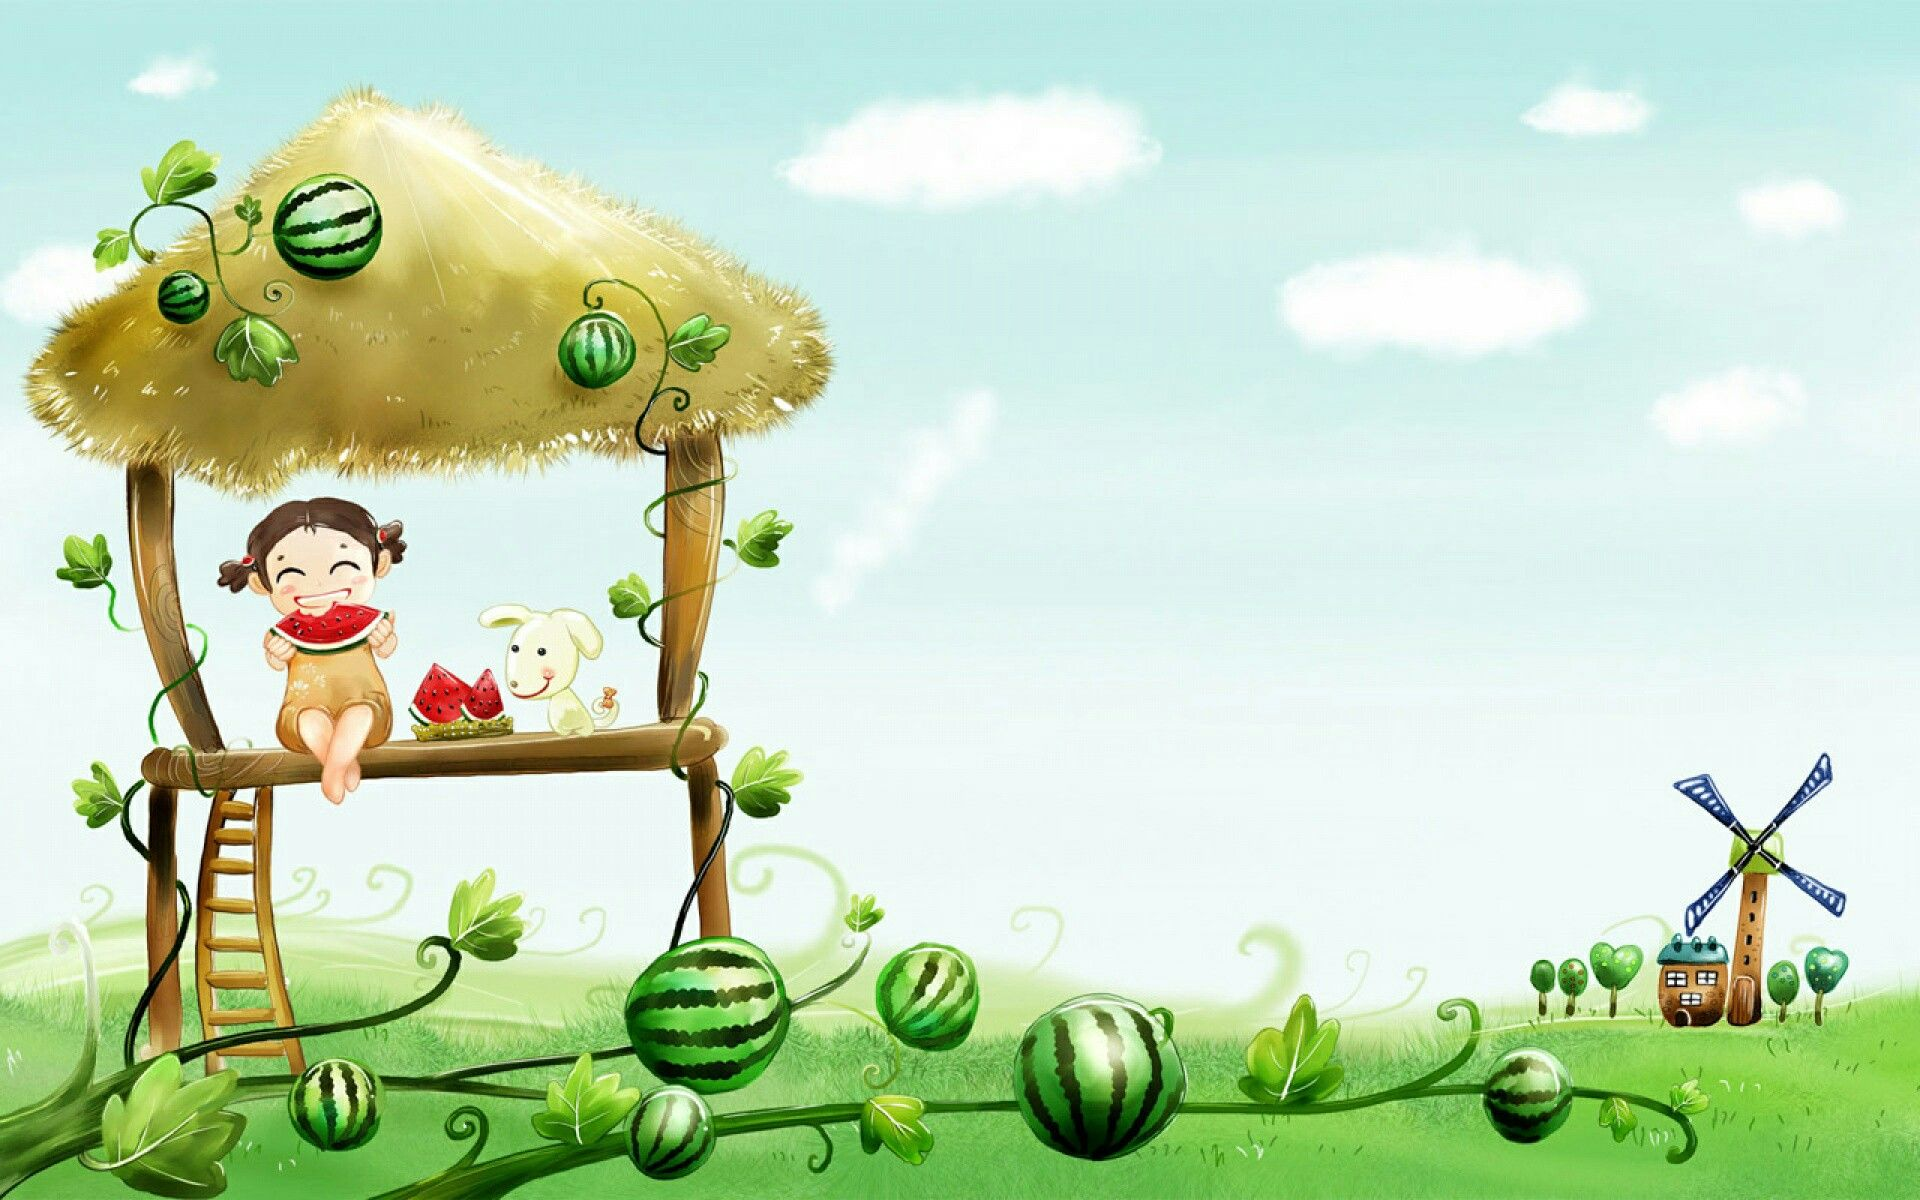 Little Girl Cartoon Wallpaper Hd Cartoon Wallpaper Cute Desktop Wallpaper